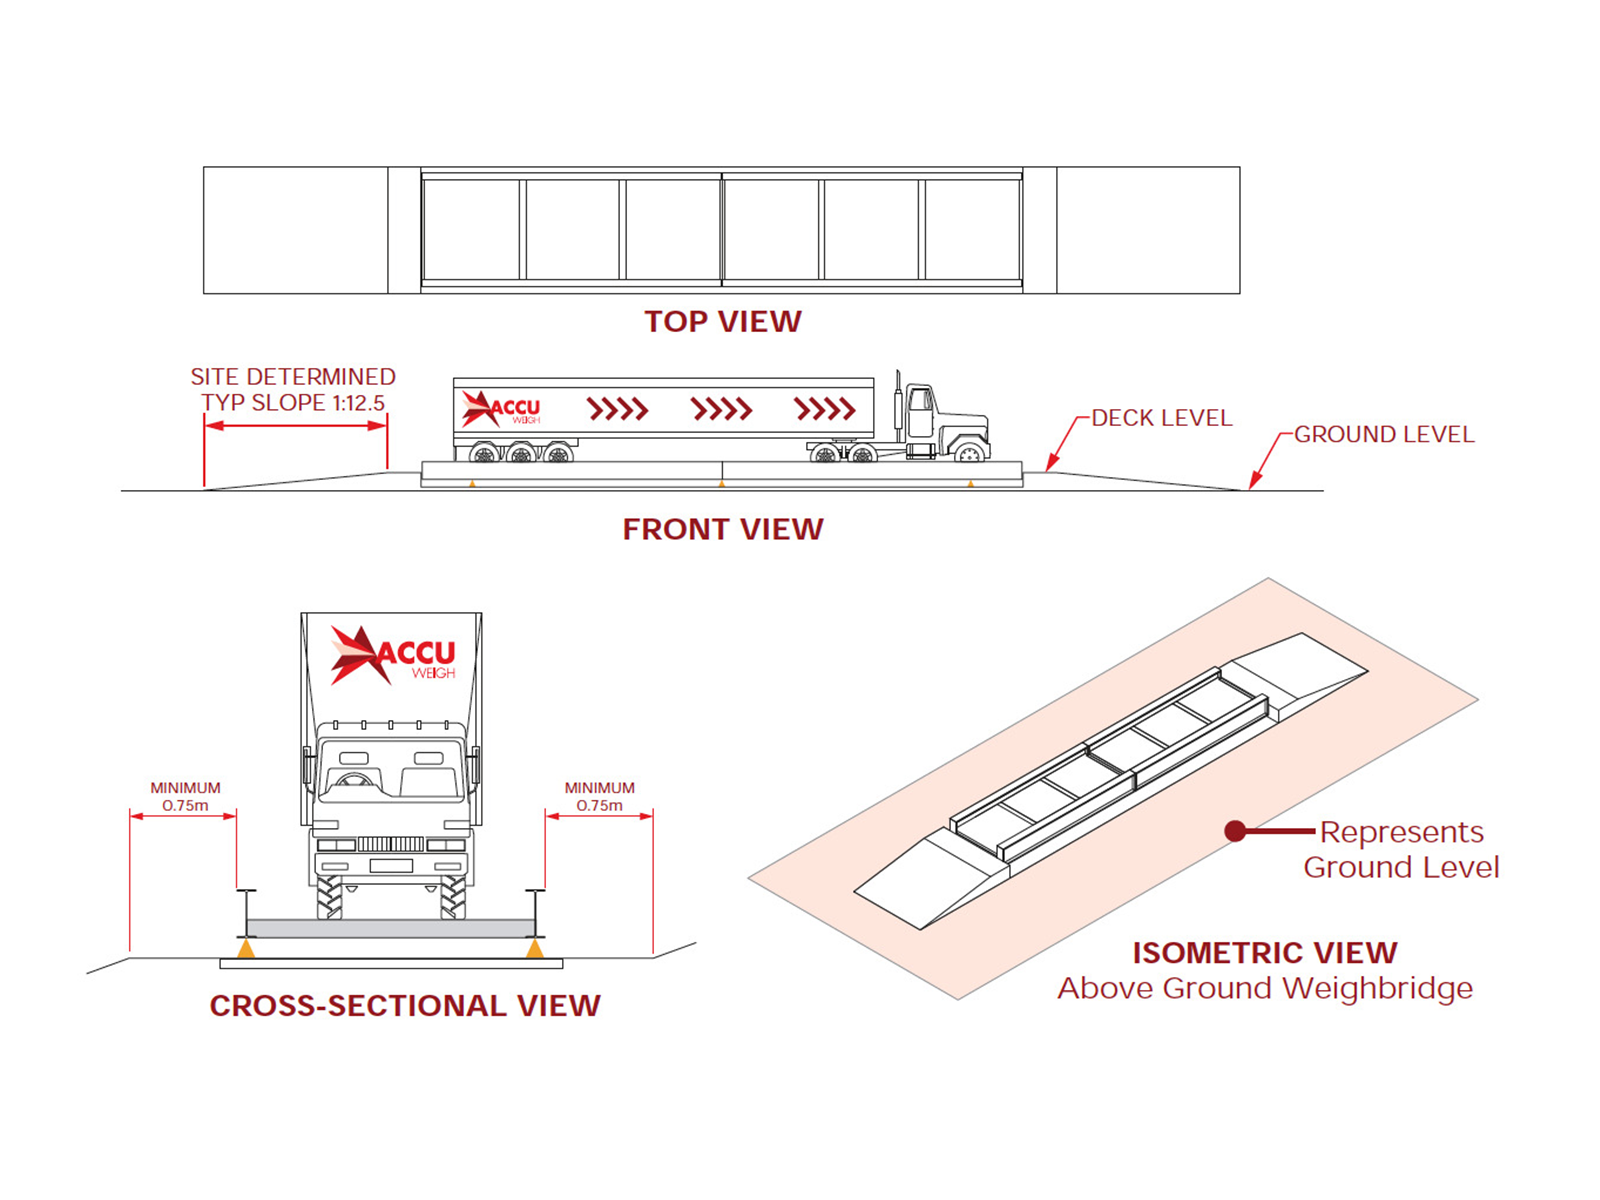 Above ground weighbridge diagram 1